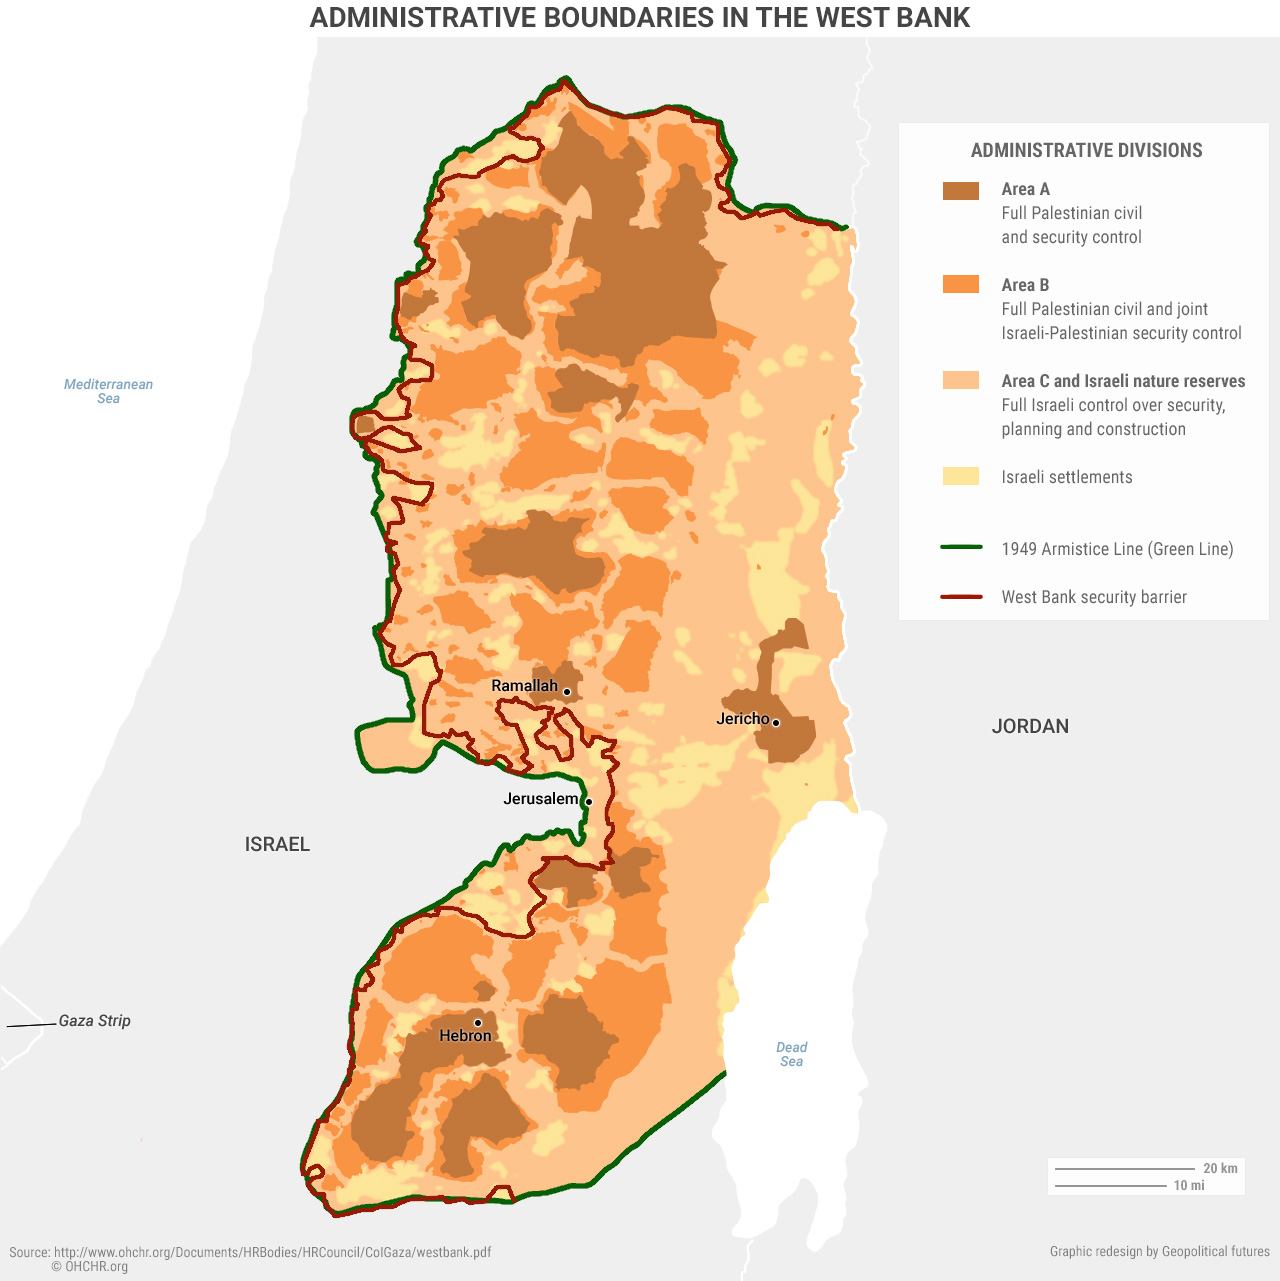 israel-administrative-divisions-in-west-bank-1